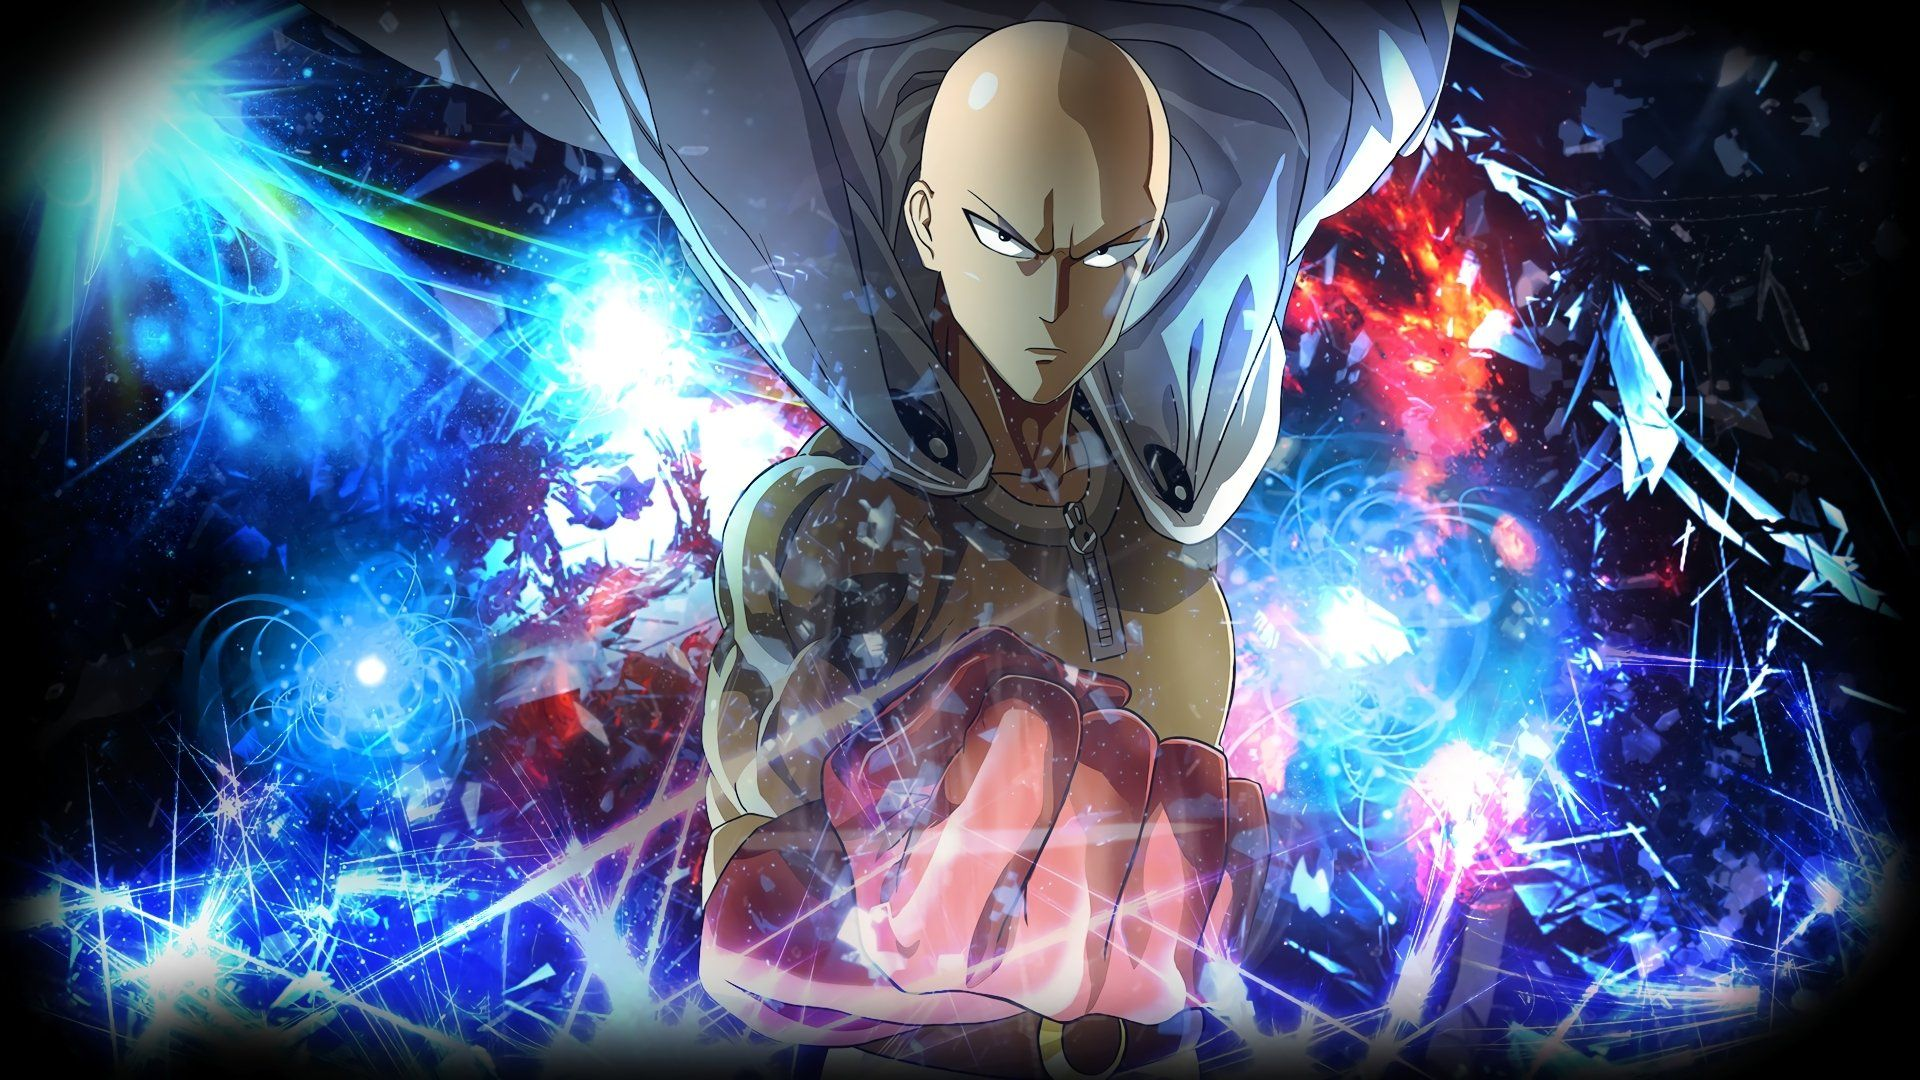 Anime One Punch Man Saitama One Punch Man Wallpaper One Punch Man Anime One Punch Man Saitama One Punch Man